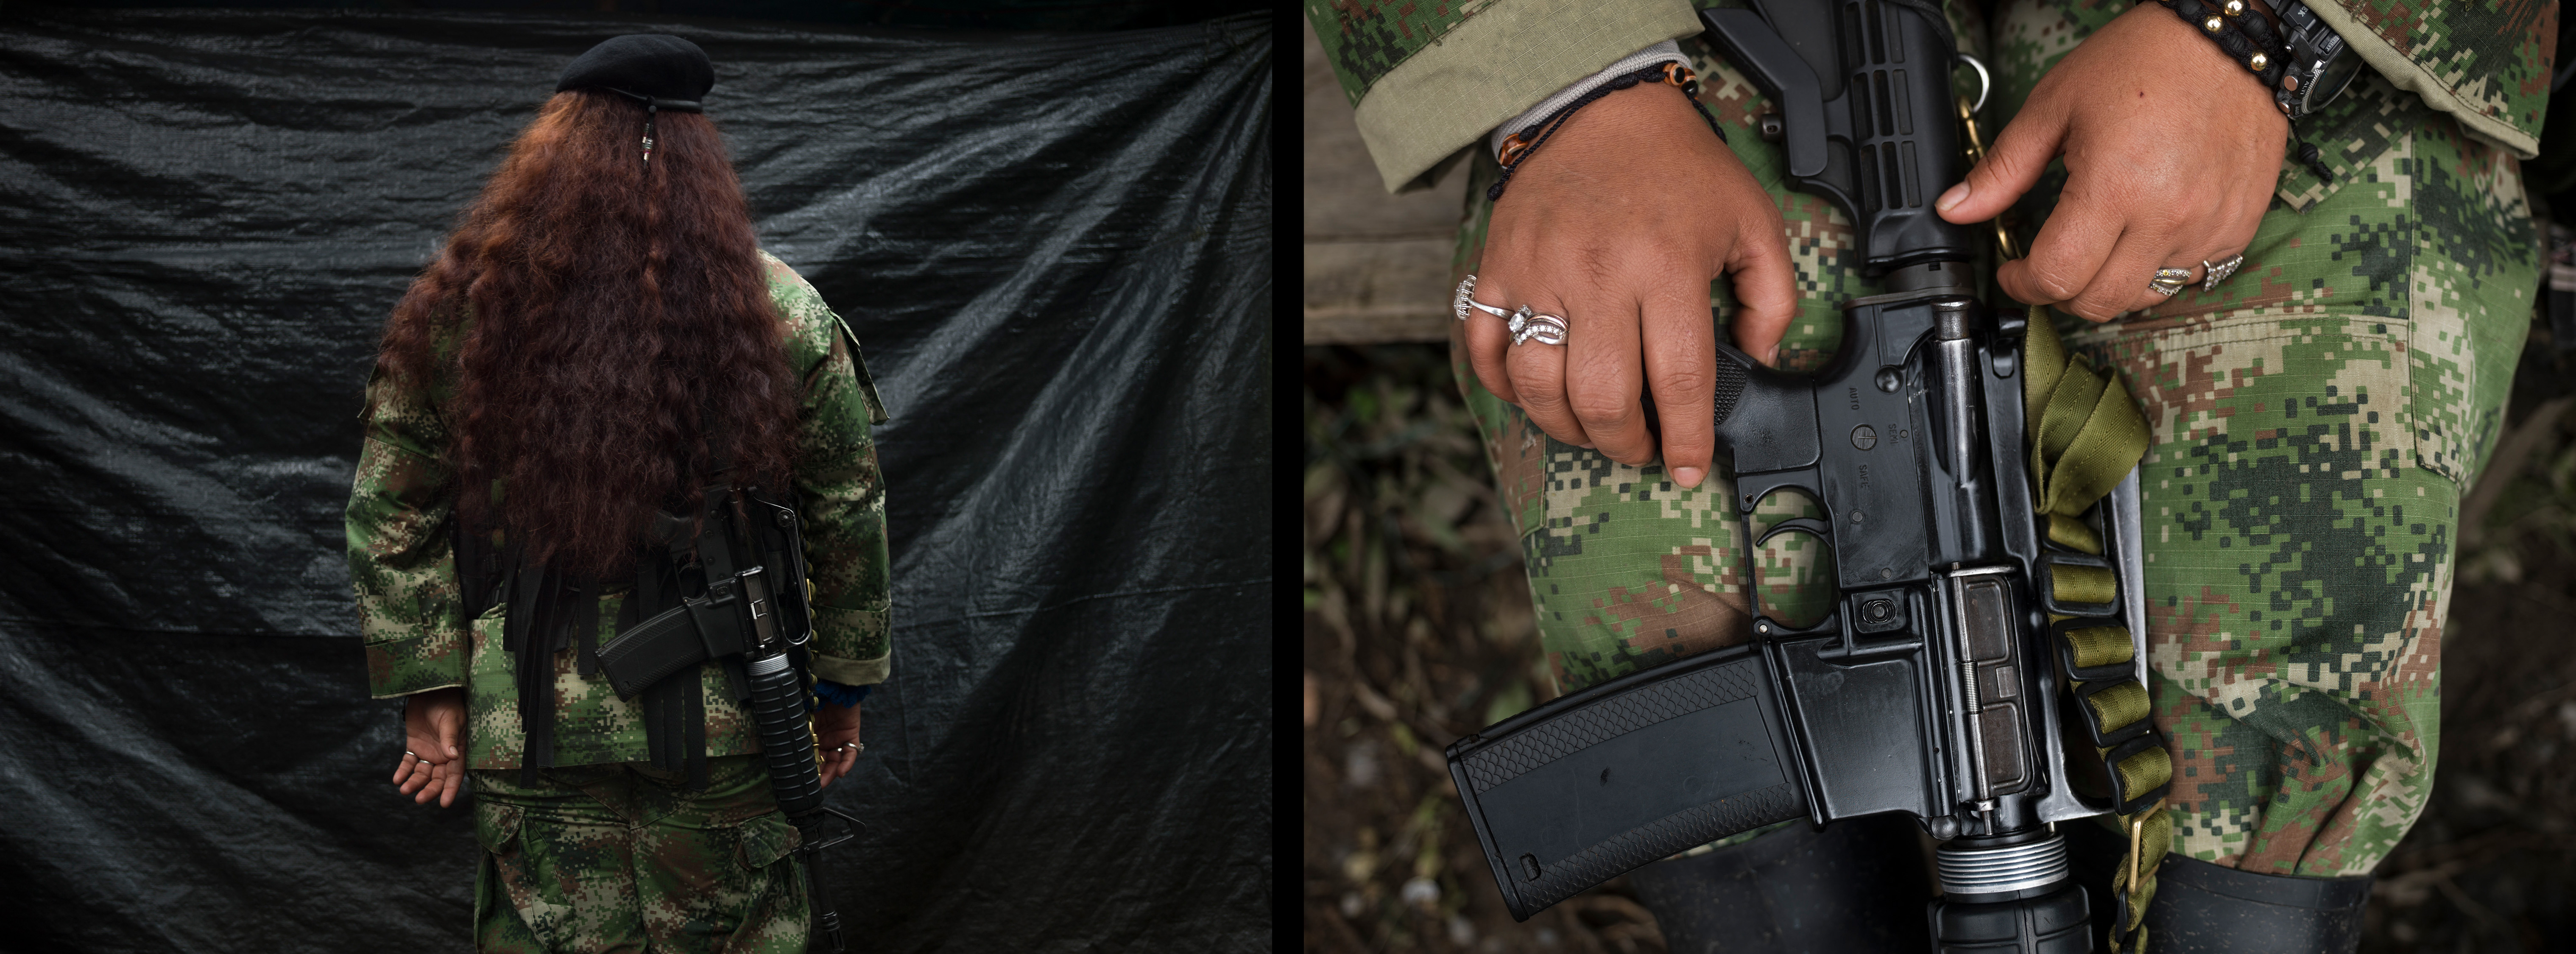 intercept-FARC-colombia-newsha-Tavakolian-magnum-photography-38-b-1490294854